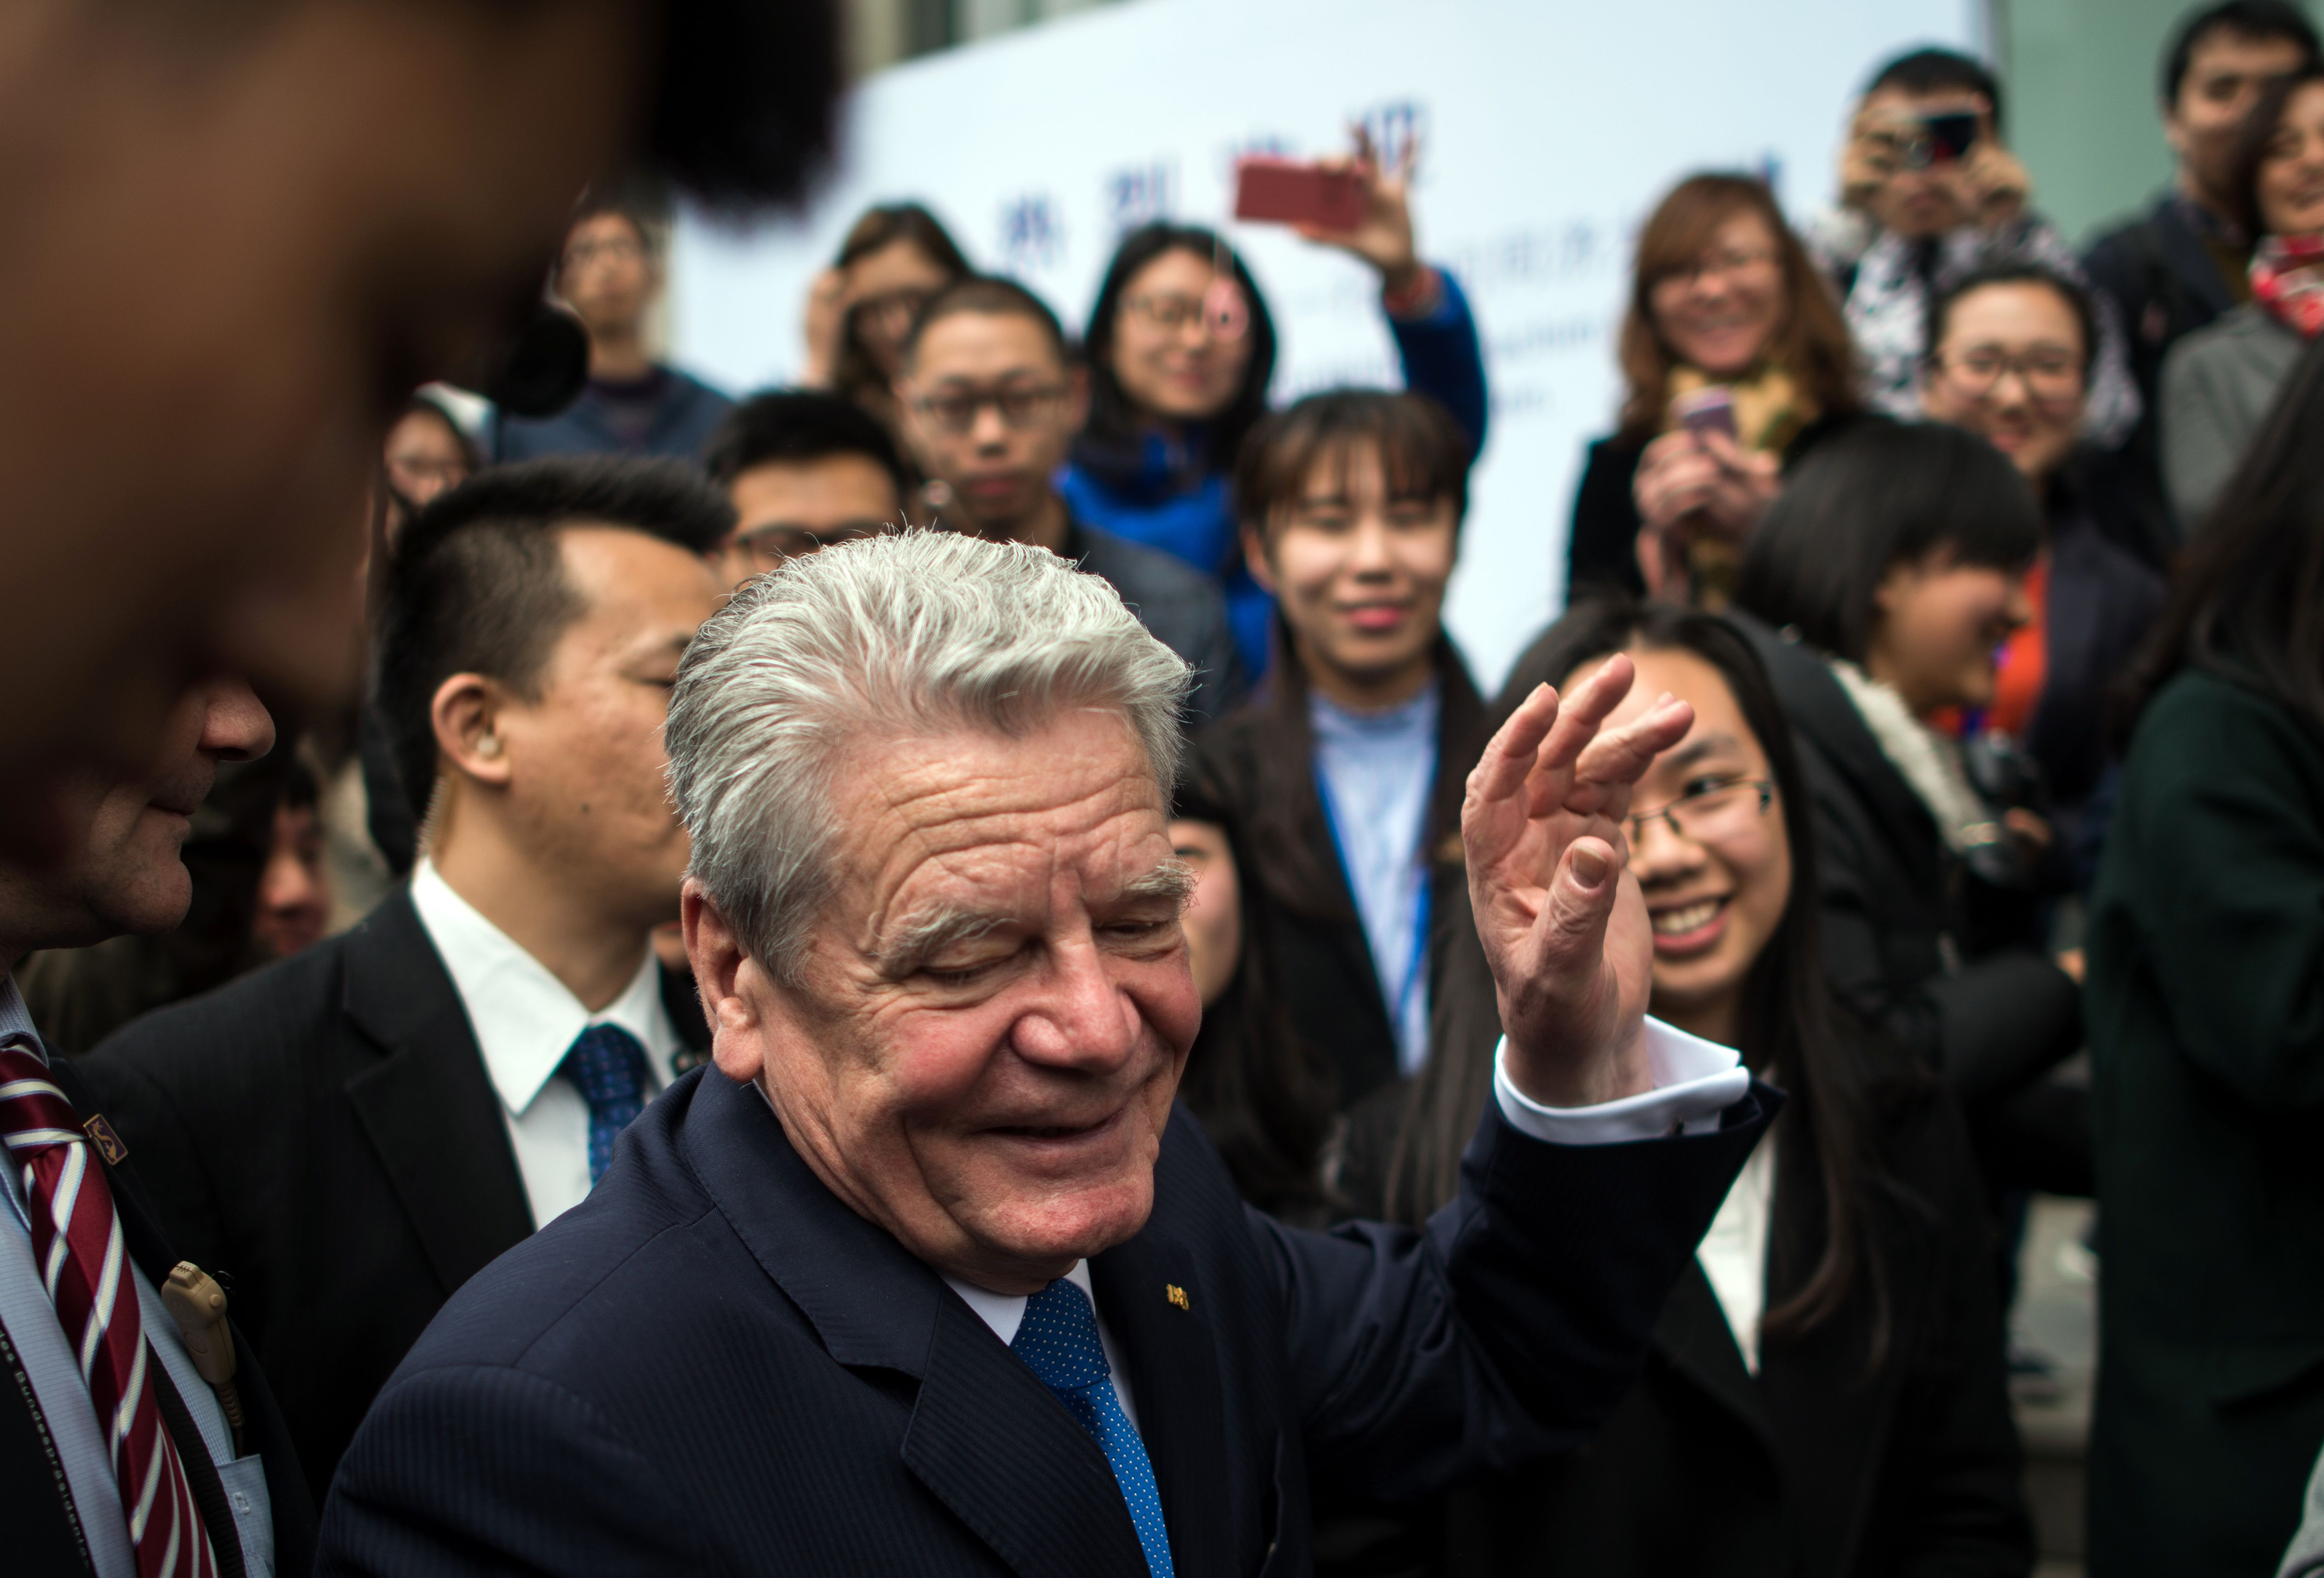 German President Joachim Gauck talks with students after his speech at Tongji University in Shanghai on  March 23, 2016